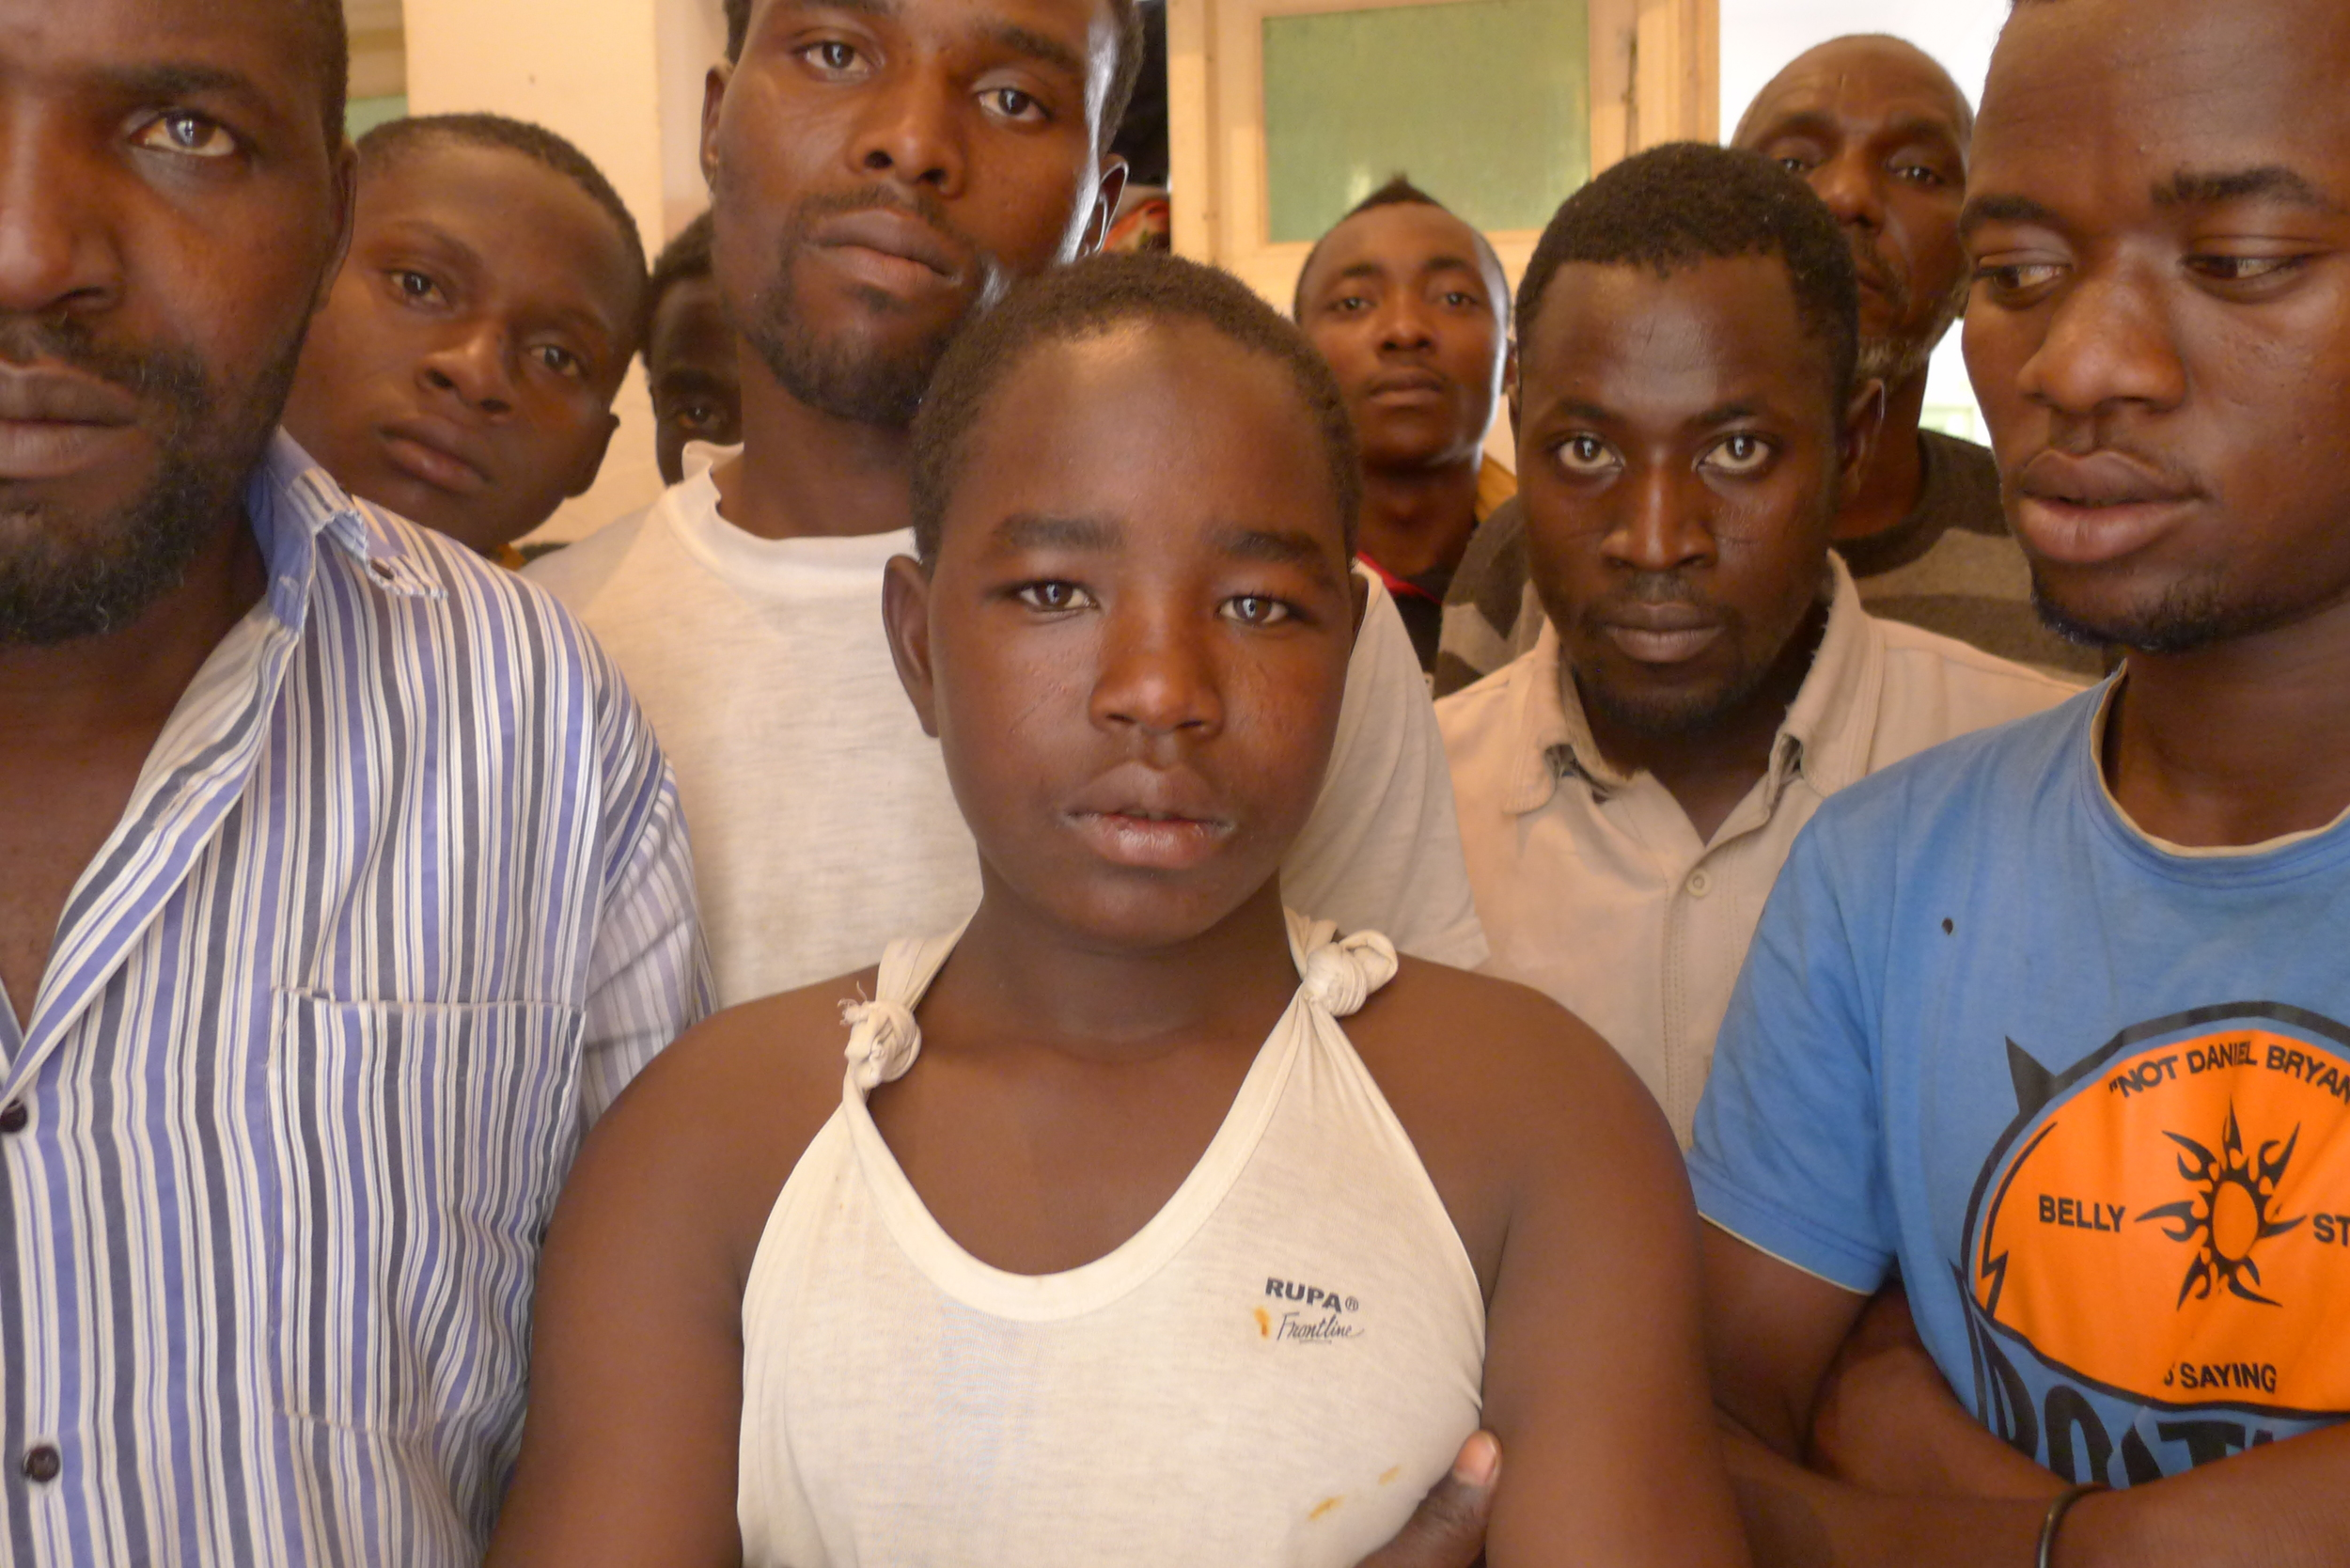 Malti, Krareem's youngest detainee, flanked by some of the adults he is locked up with.